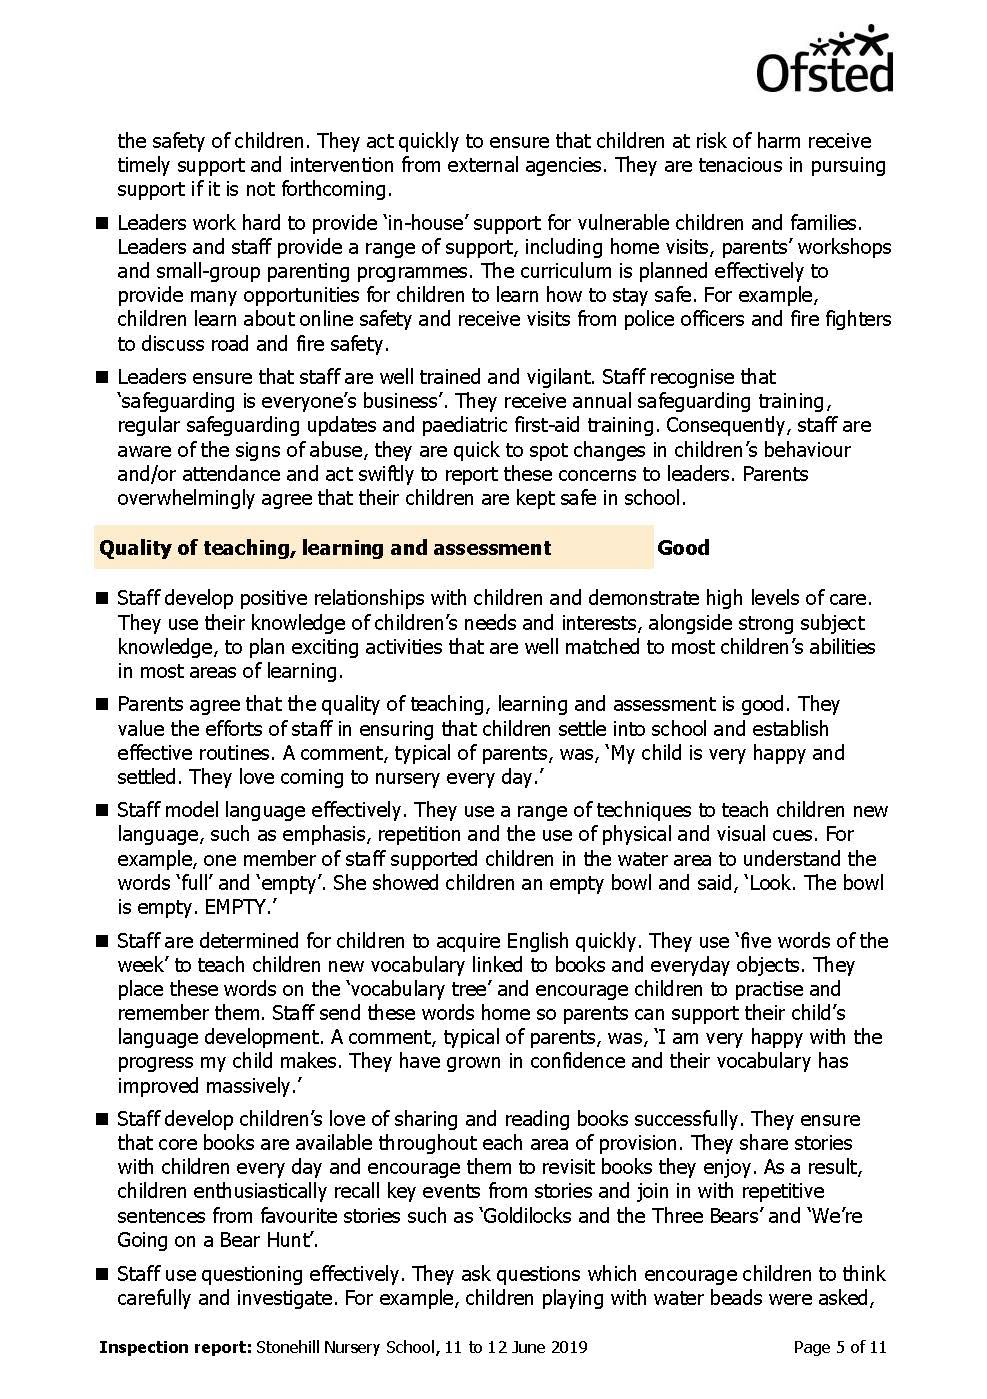 Stonehill OFSTED Report 2019_Page_05.jpg